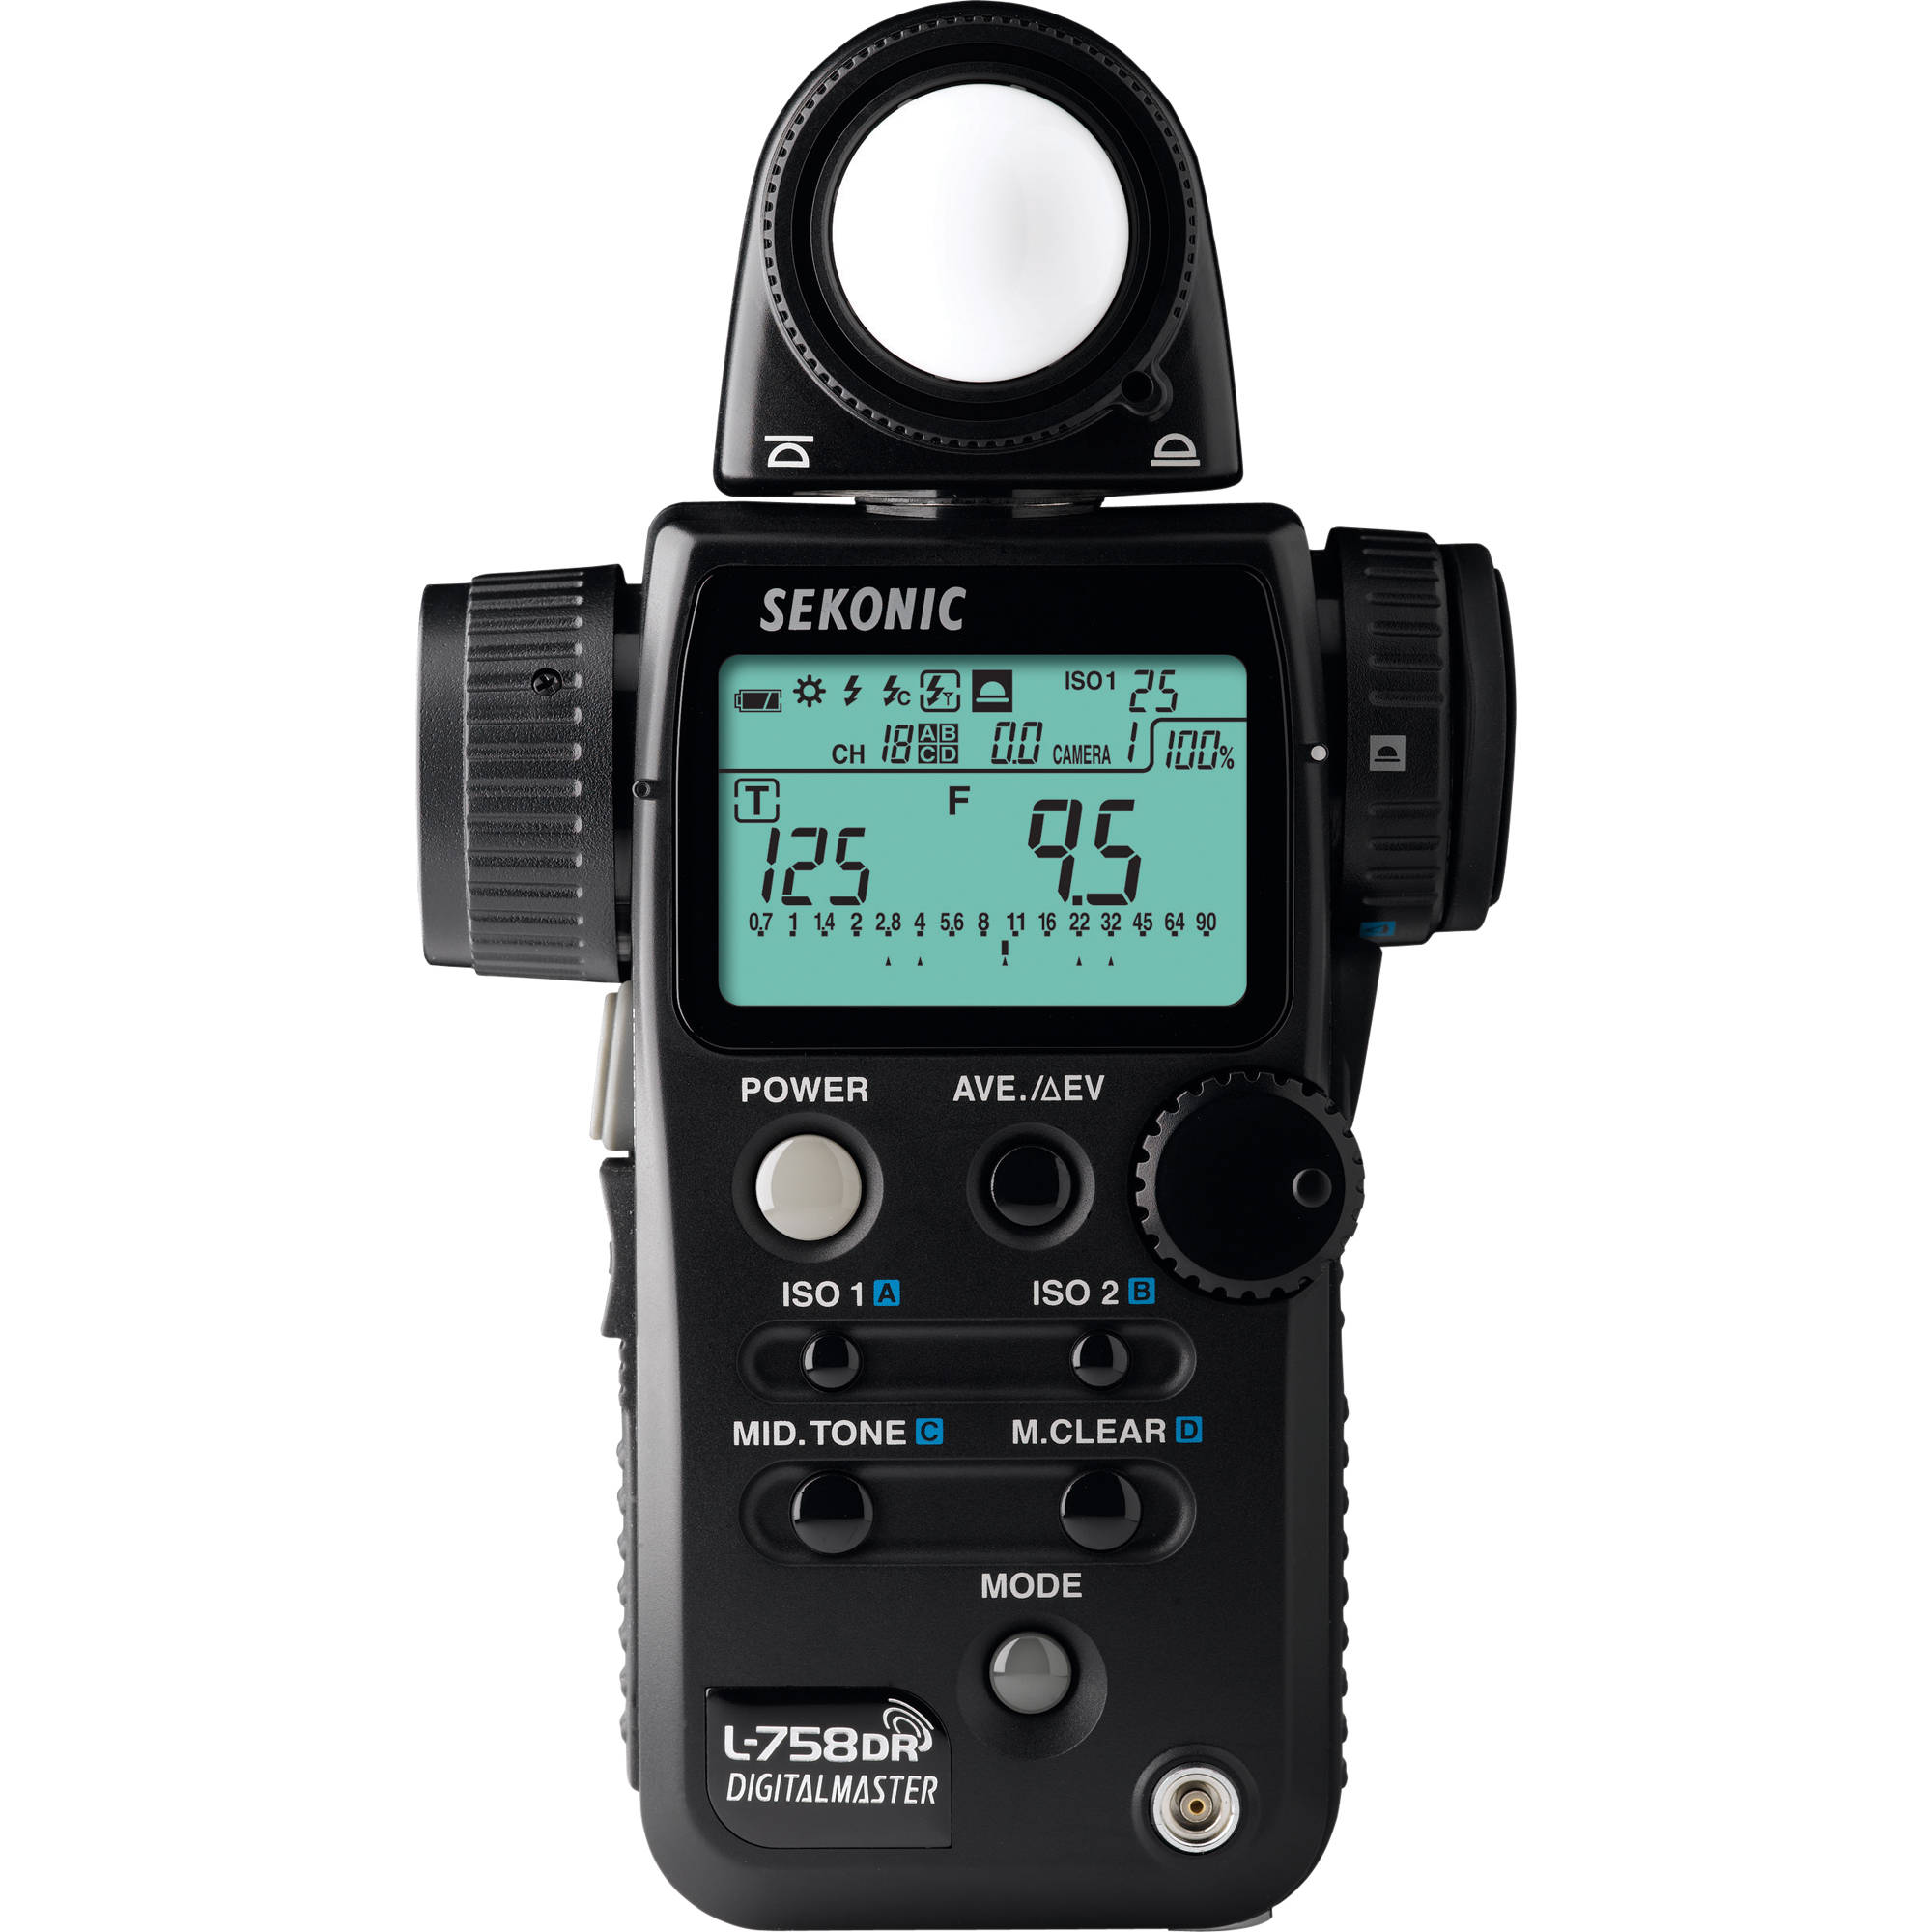 Sekonic L-758DR DigitalMaster Flash Meter